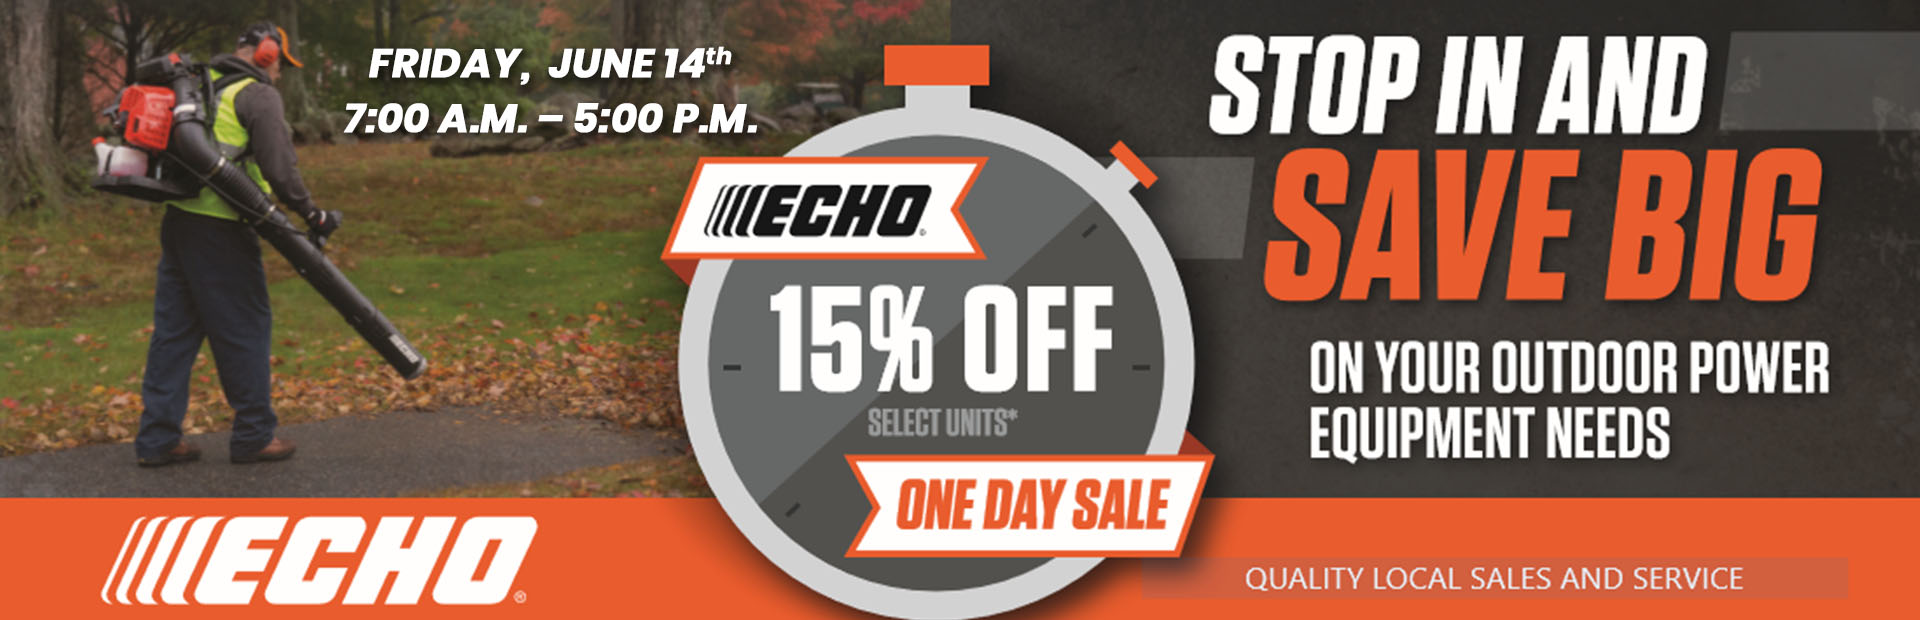 ECHO One Day Sale: 15% off select units!